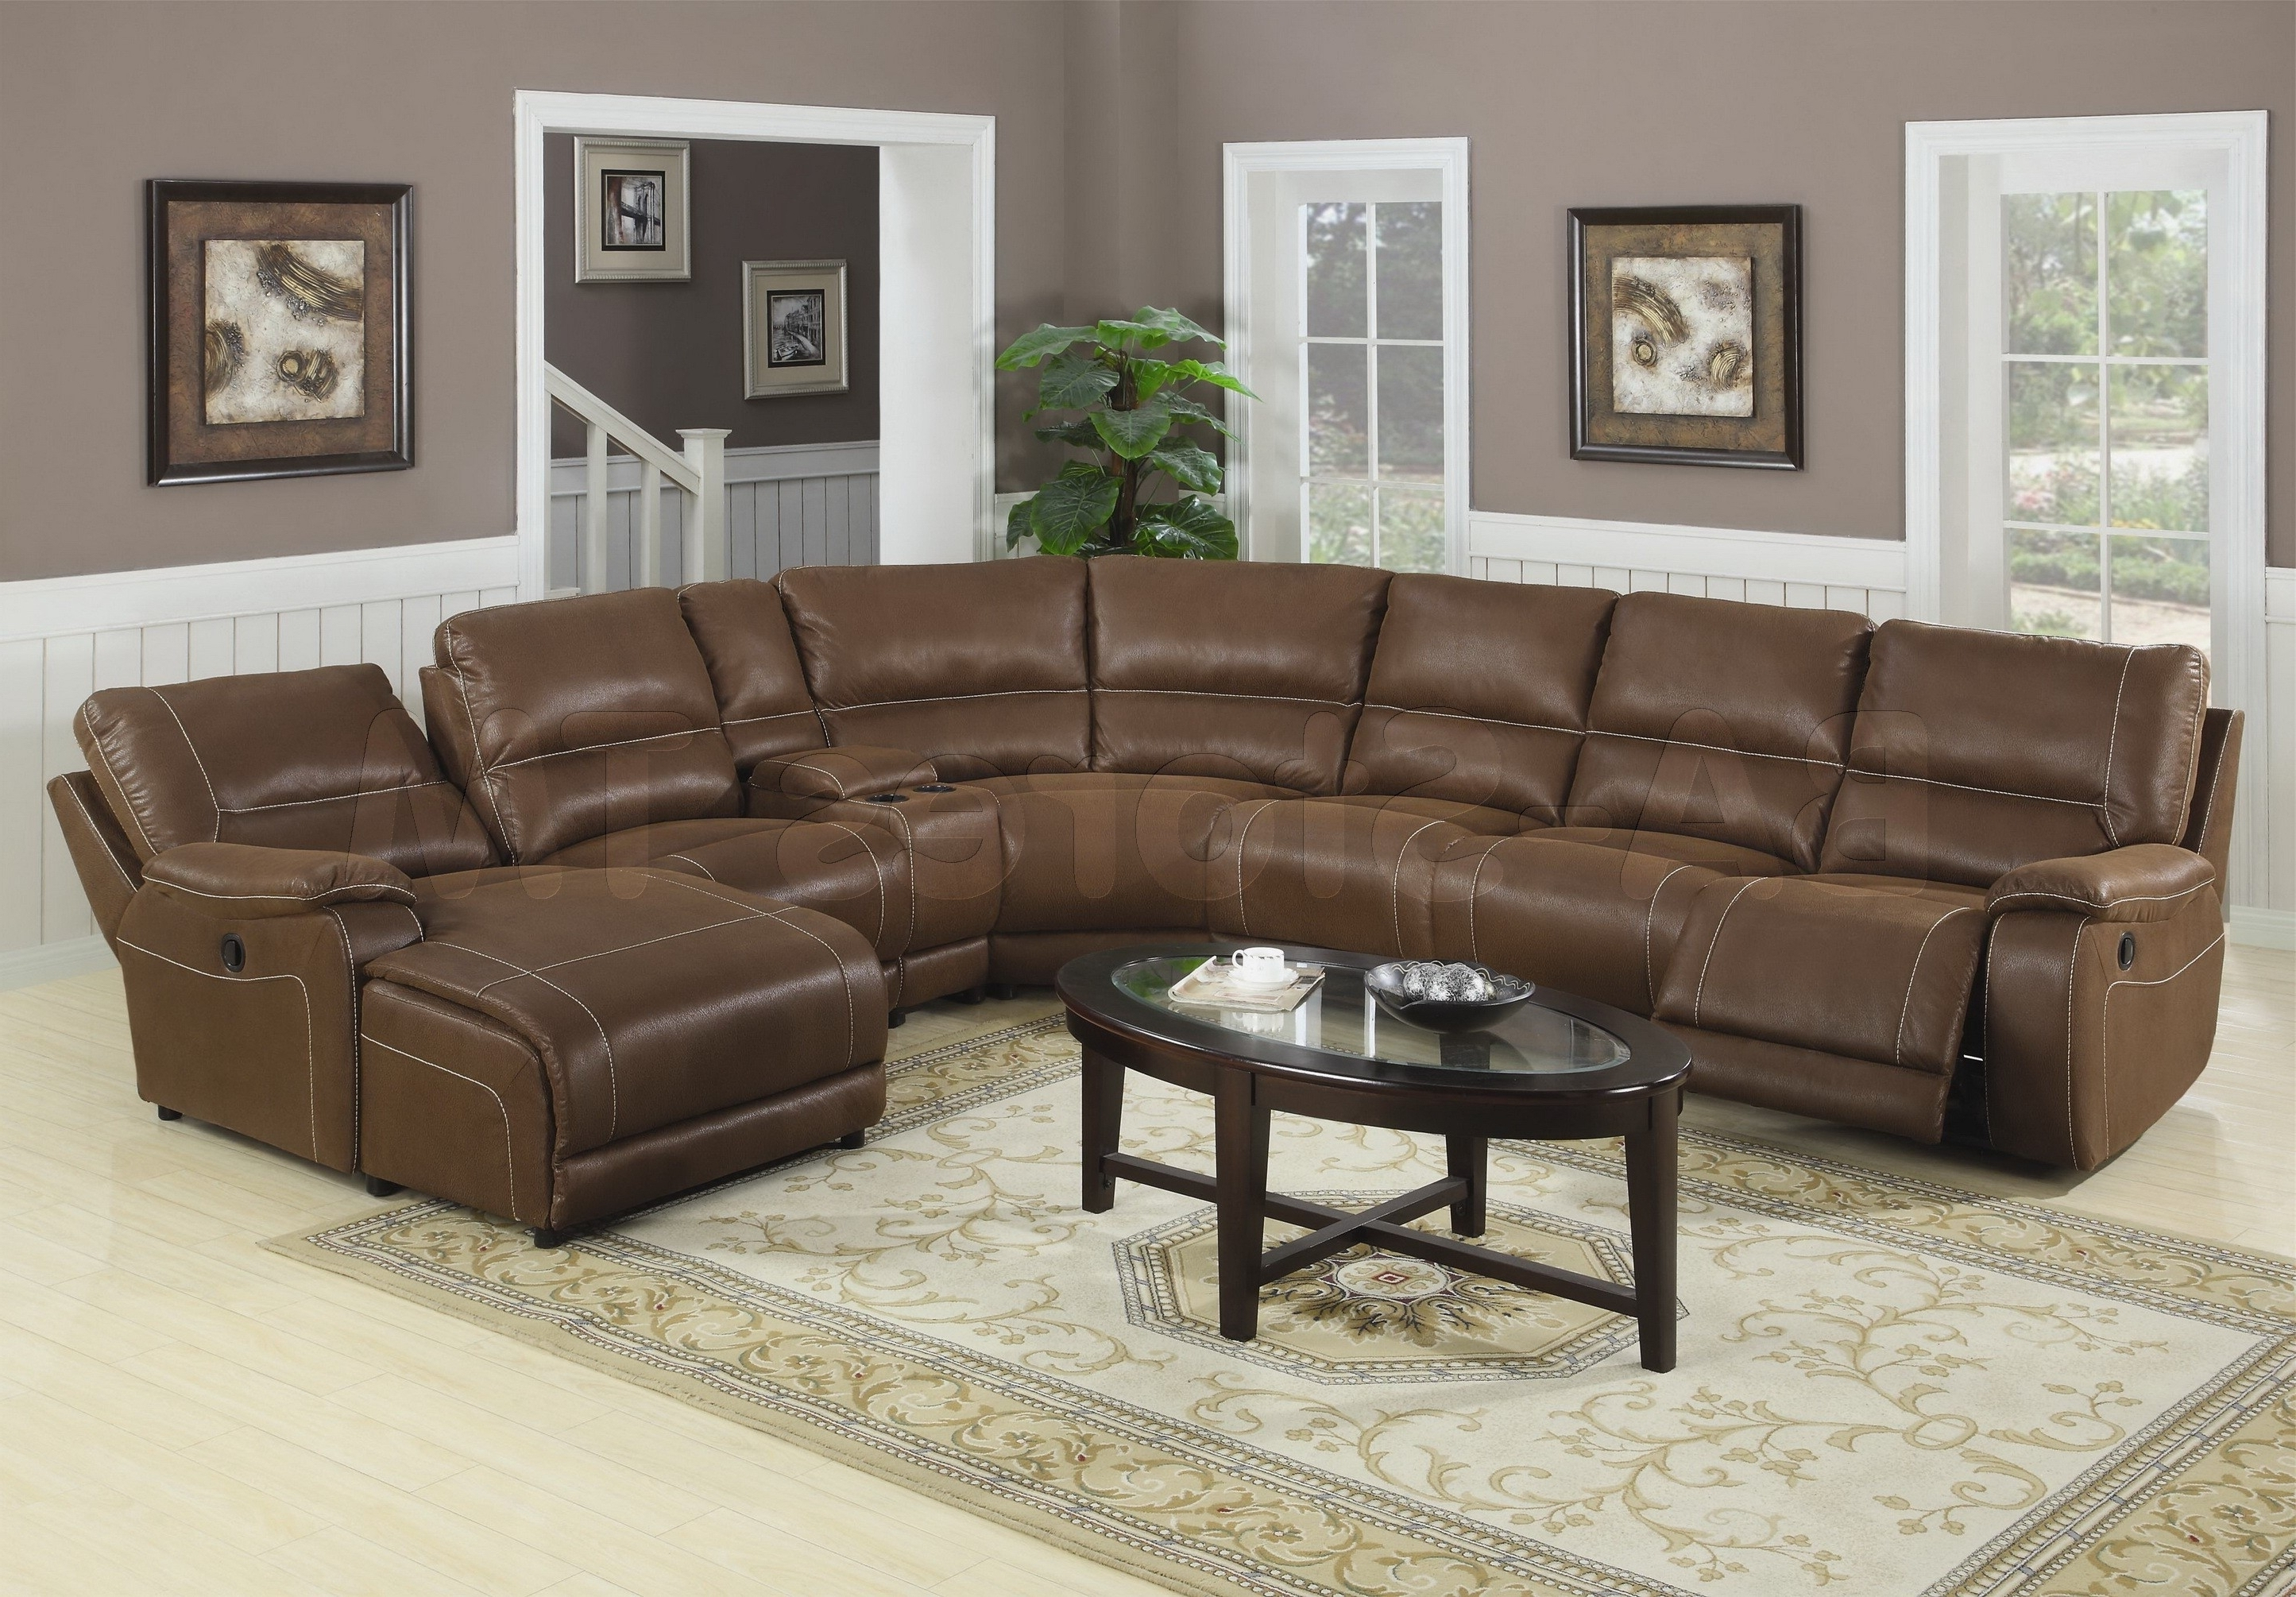 Furniture: Interesting Living Room Interior Using Large Sectional Inside Preferred Craftsman Sectional Sofas (View 10 of 20)